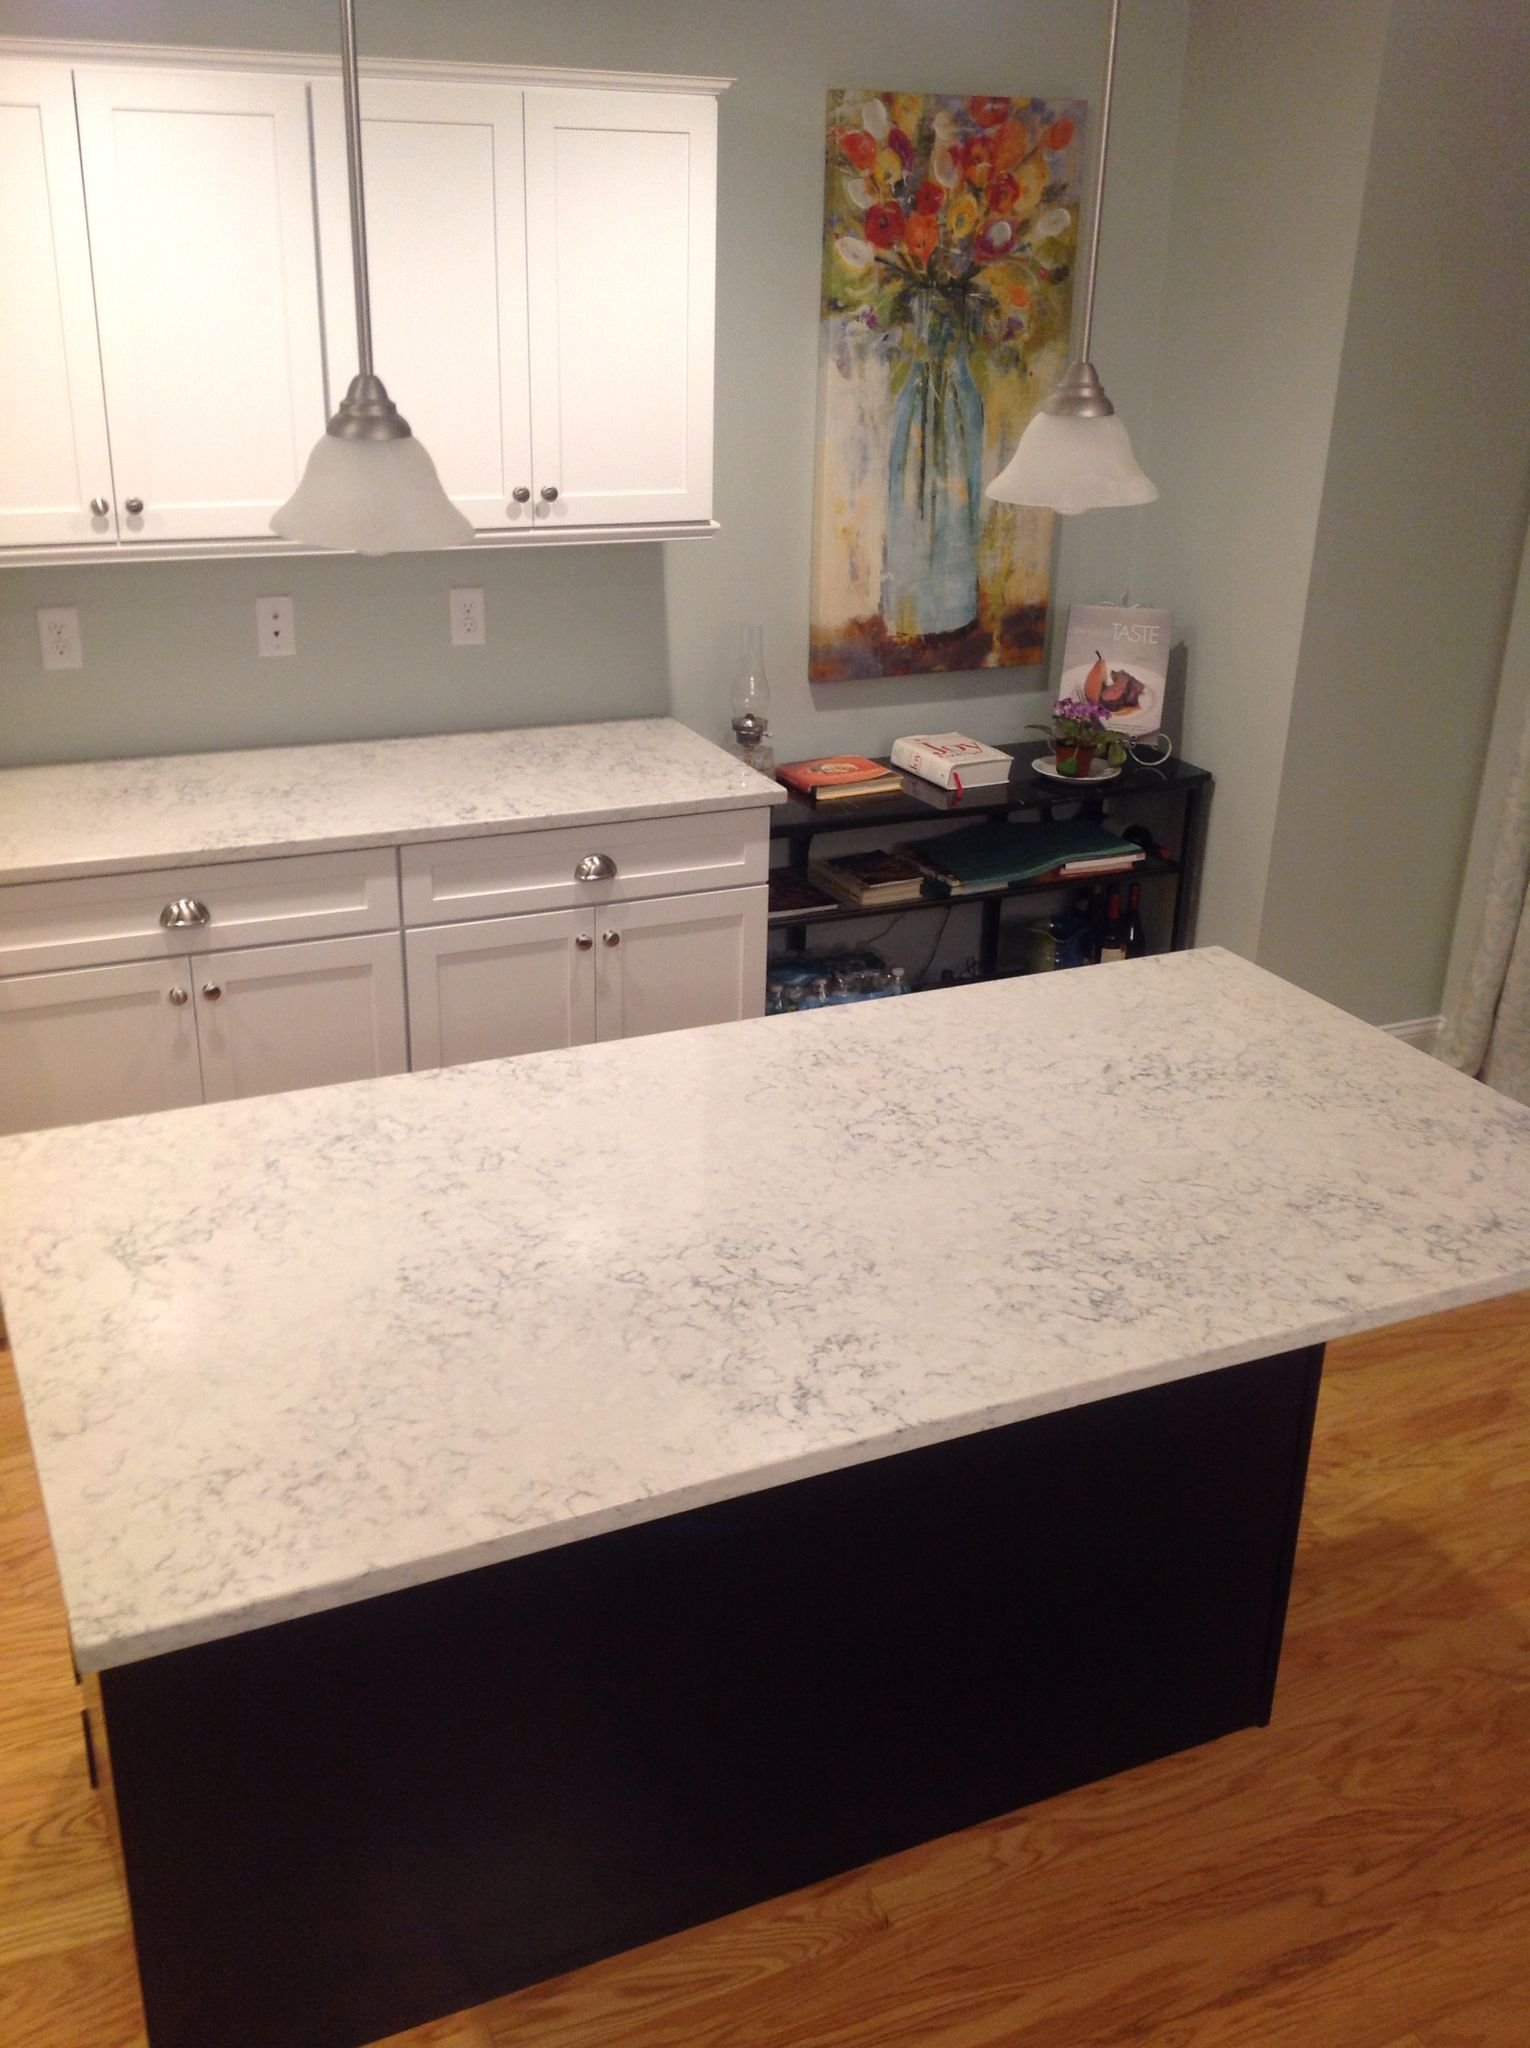 My Dream Kitchen Countertops : Love my new kitchen silestone helix countertops thinking